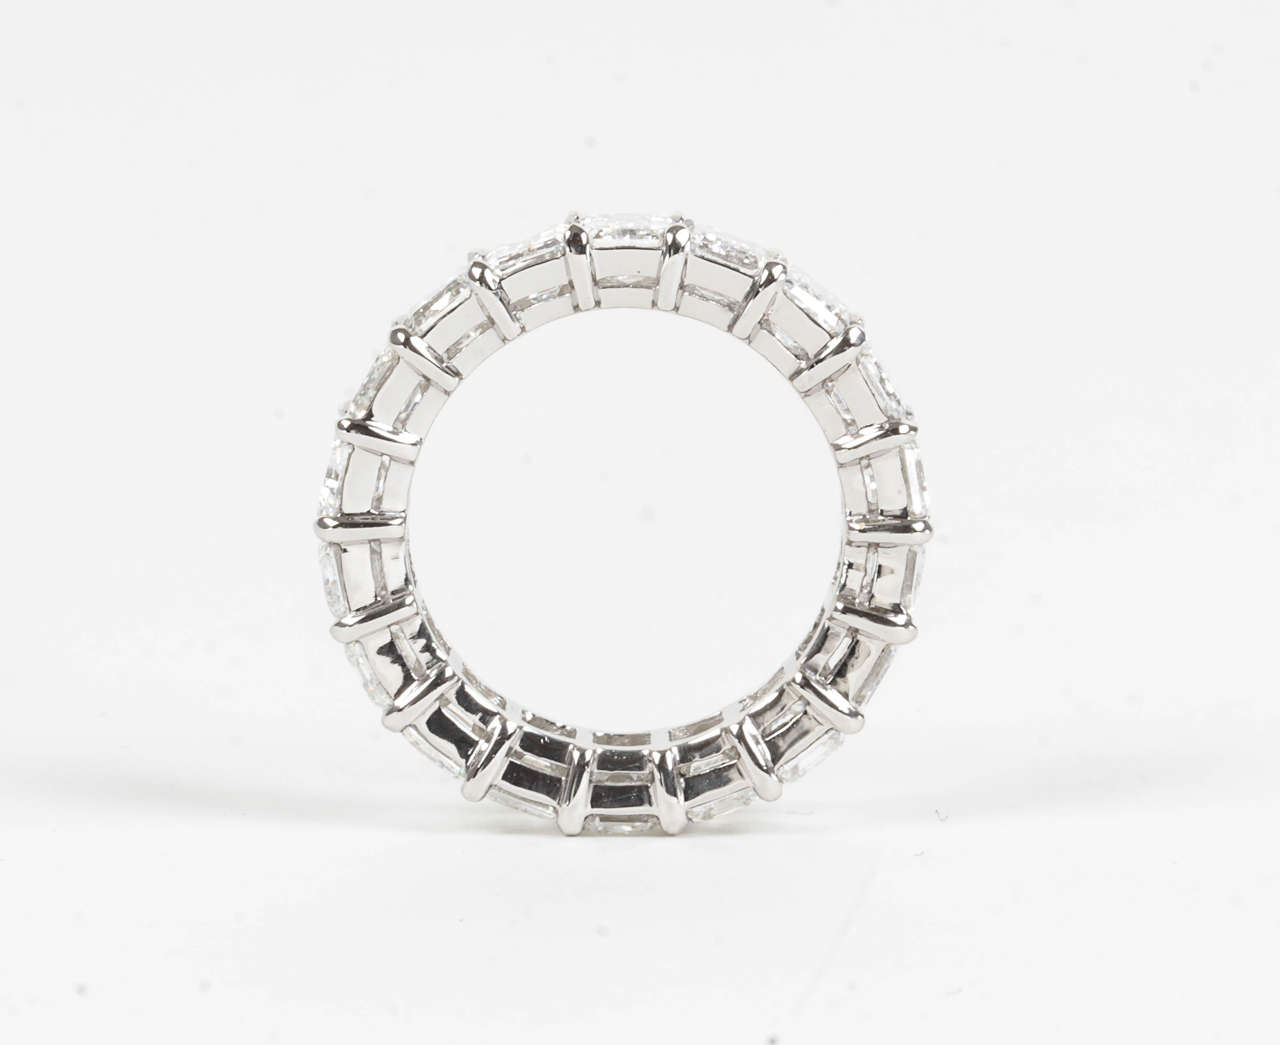 9 Carat Emerald Cut Diamond Platinum Eternity Band In As New Condition For Sale In New York, NY